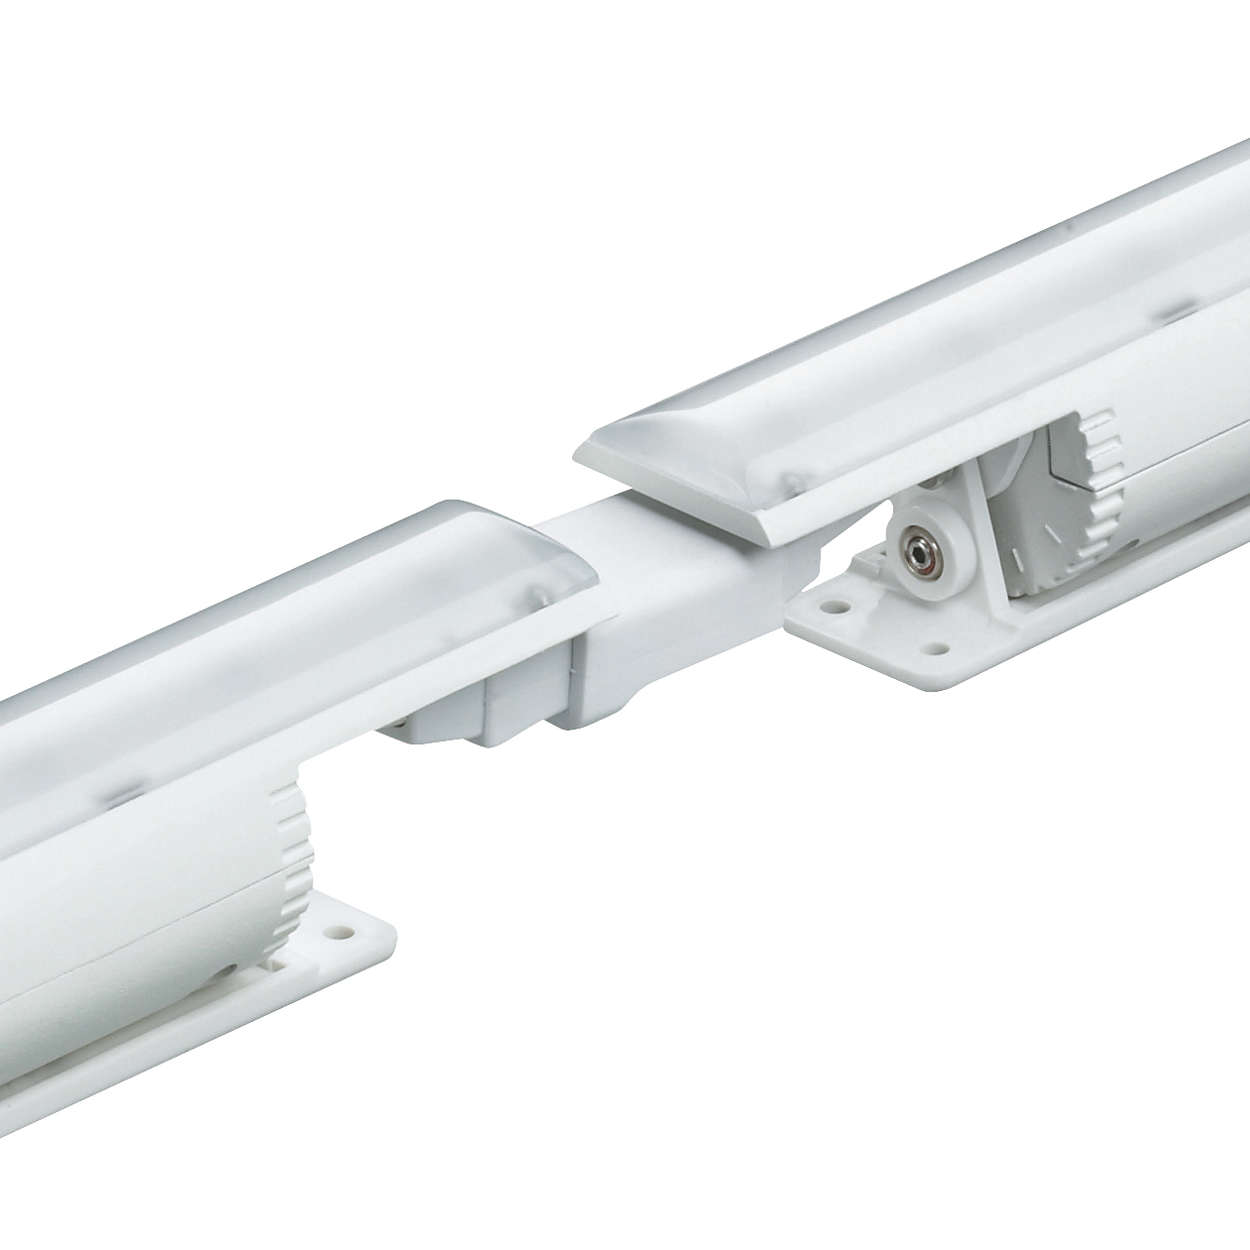 Cove lighting led - Ew Cove Mx Powercore Maximum Output Linear Led Fixture For Cove General And